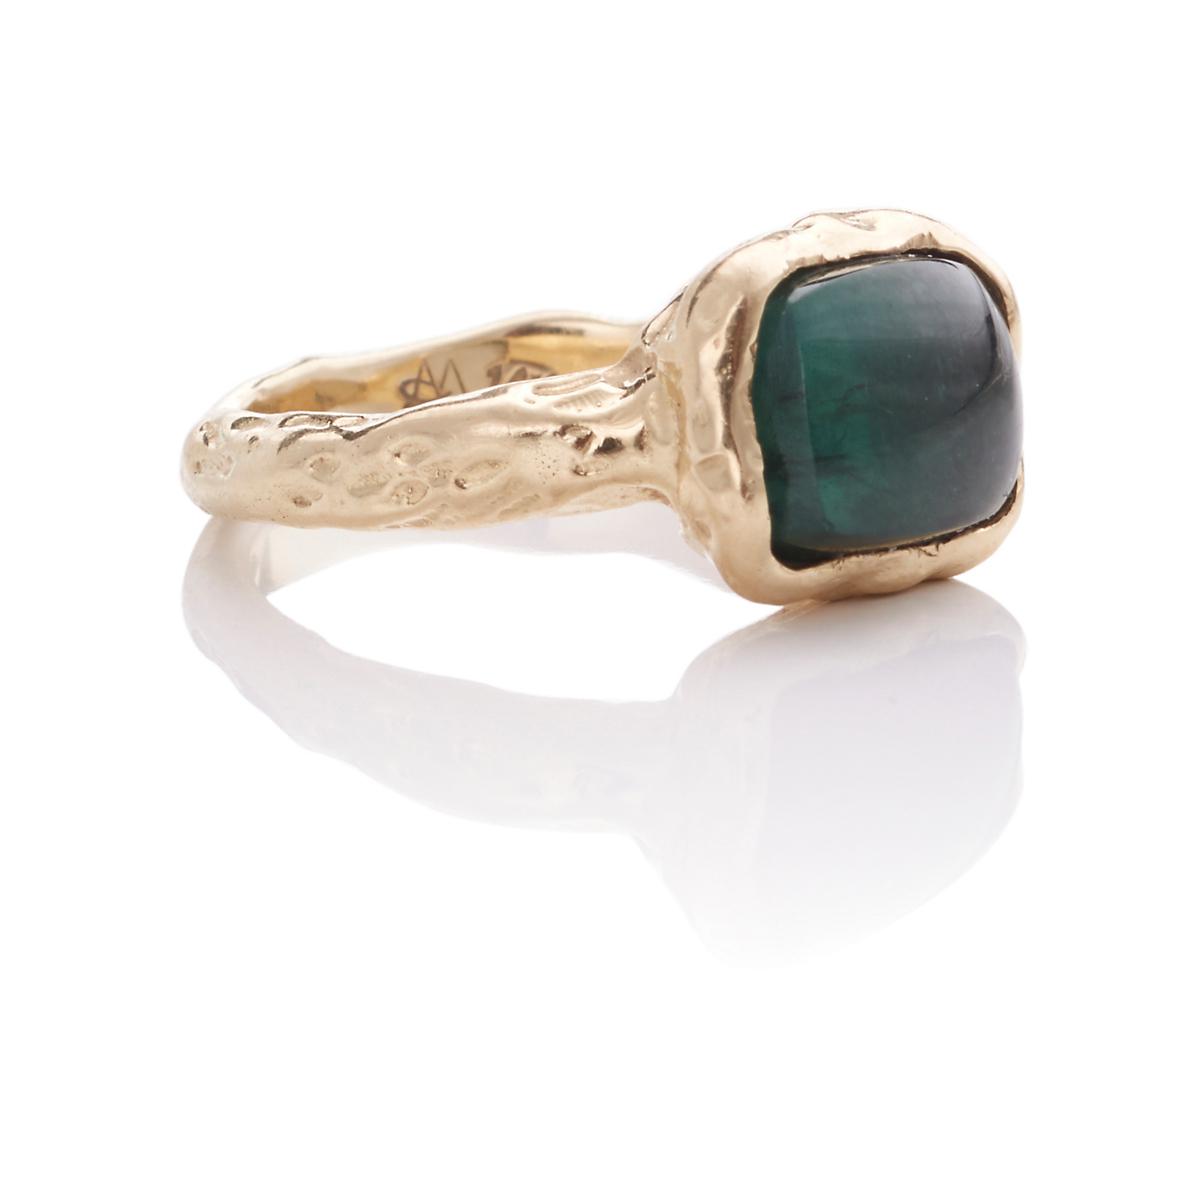 Ashley Morgan Cushion Cabochon Tourmaline & Gold Ring